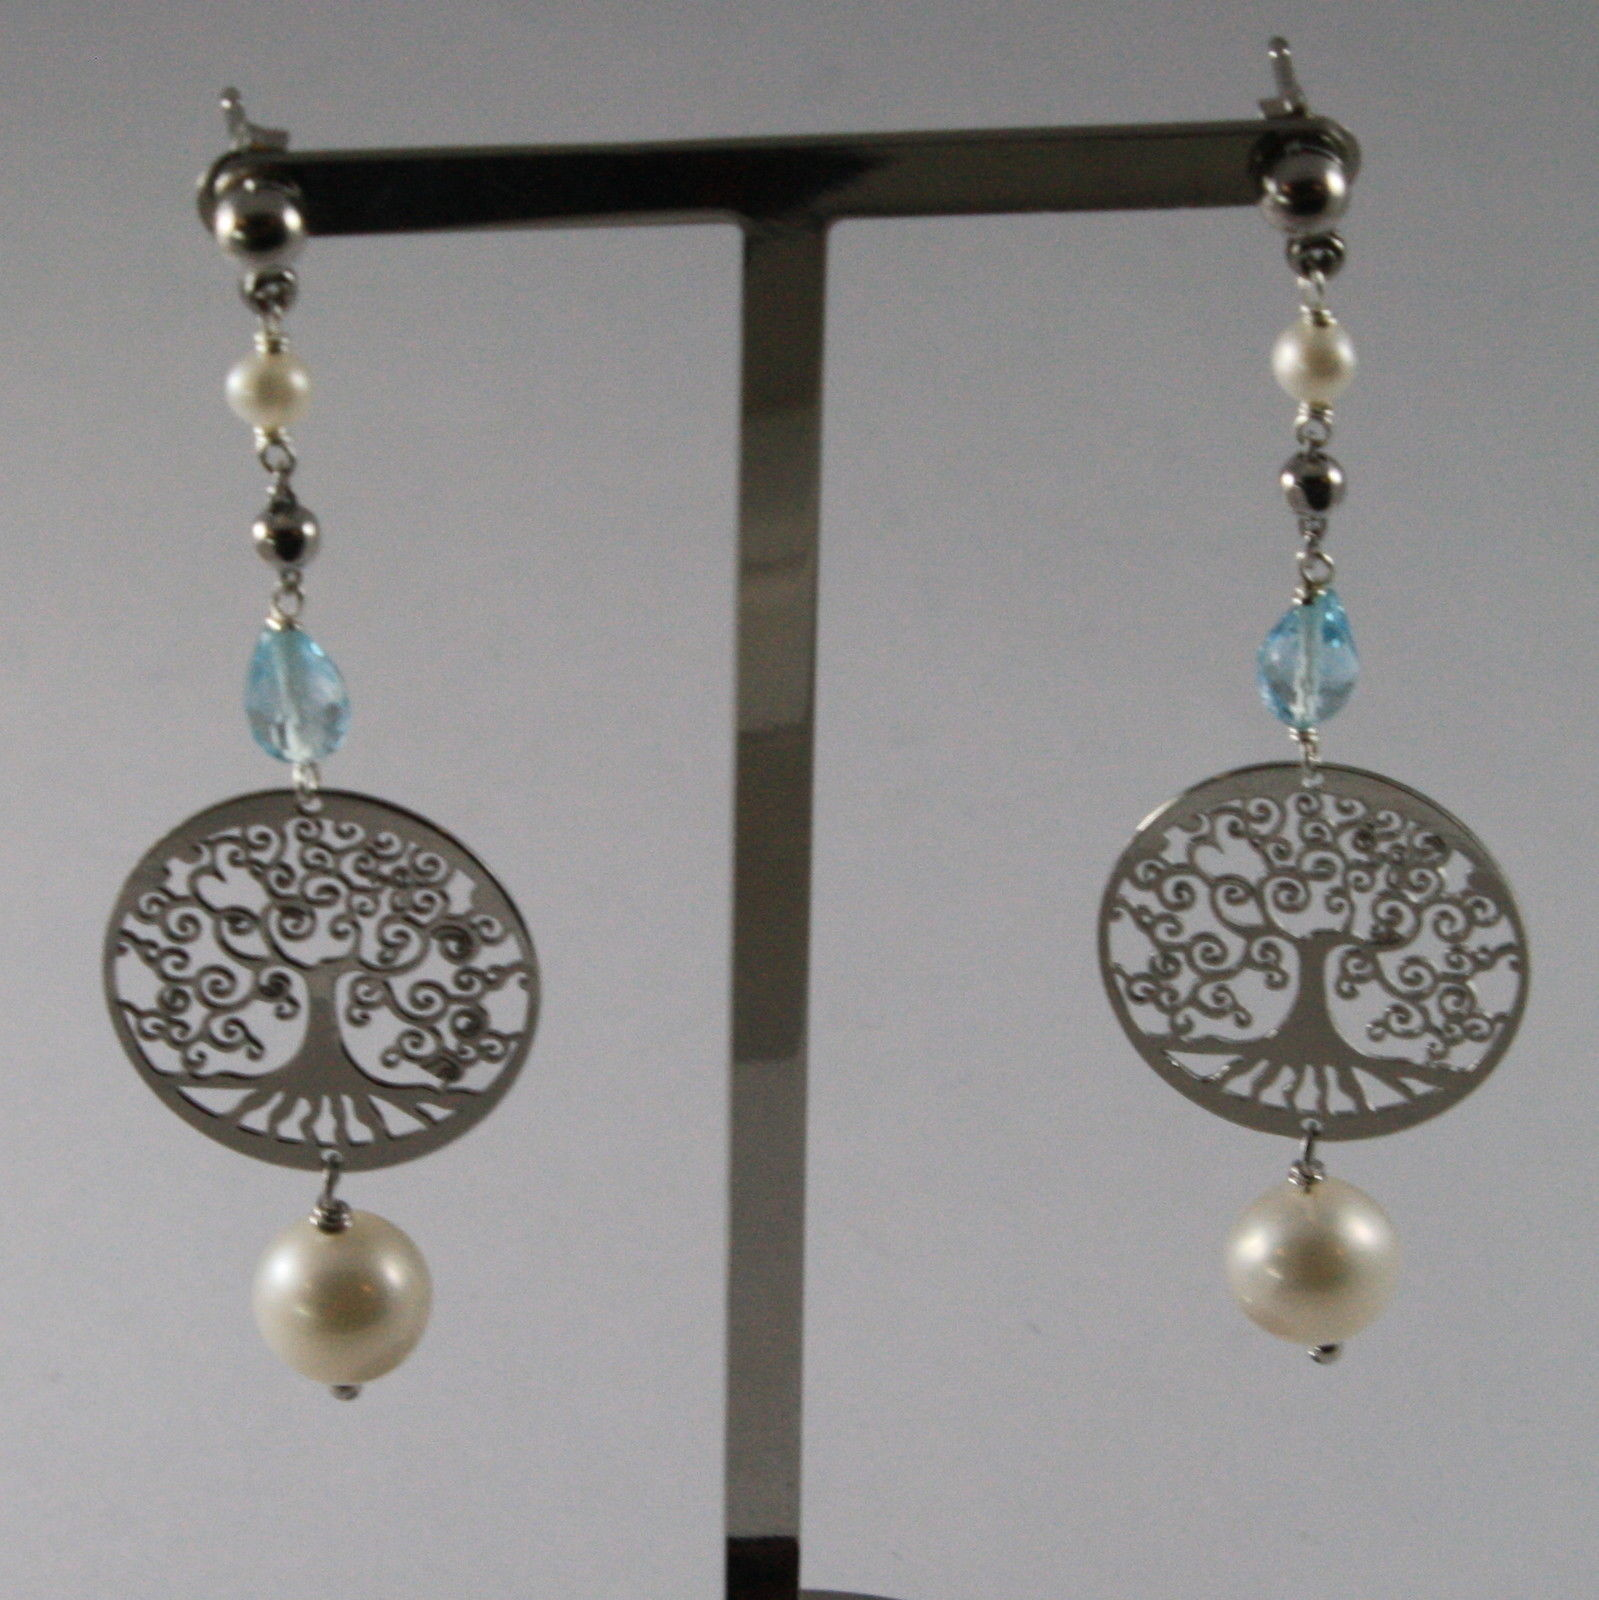 925 Silver Earrings with Blue Topaz, White Pearls and Tree of Life